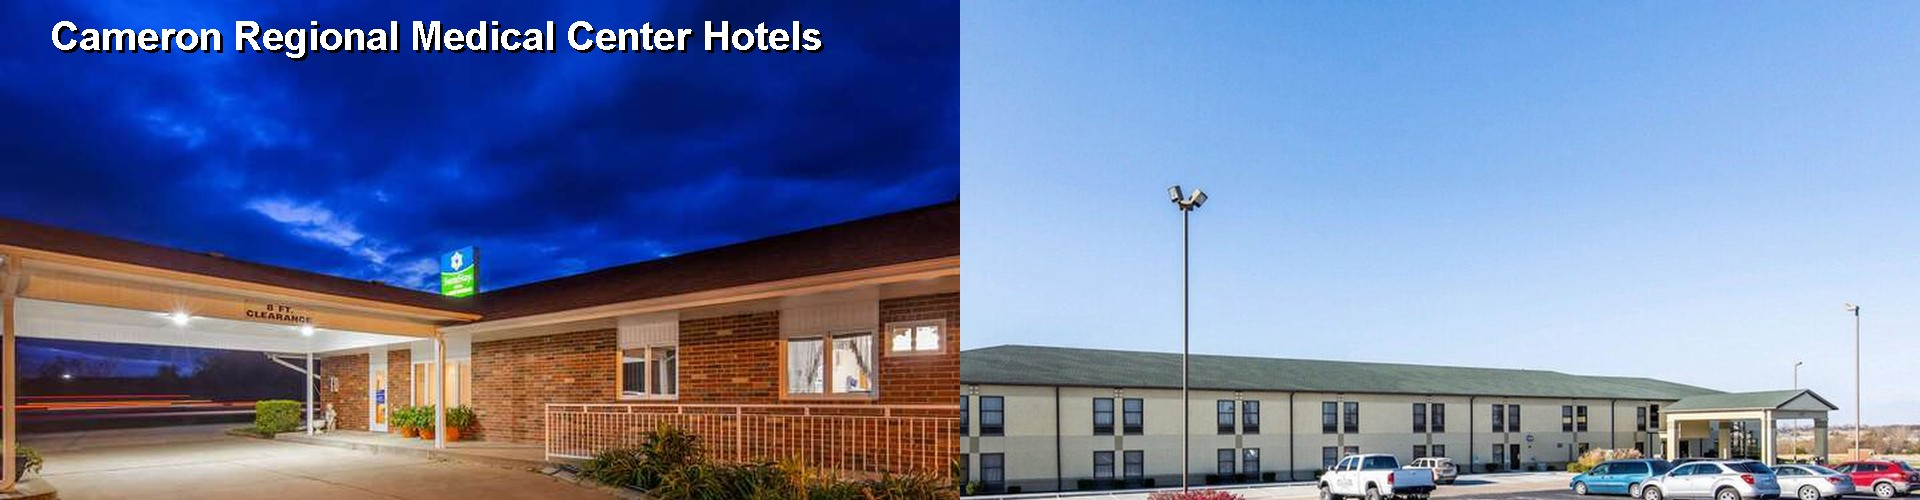 5 Best Hotels near Cameron Regional Medical Center